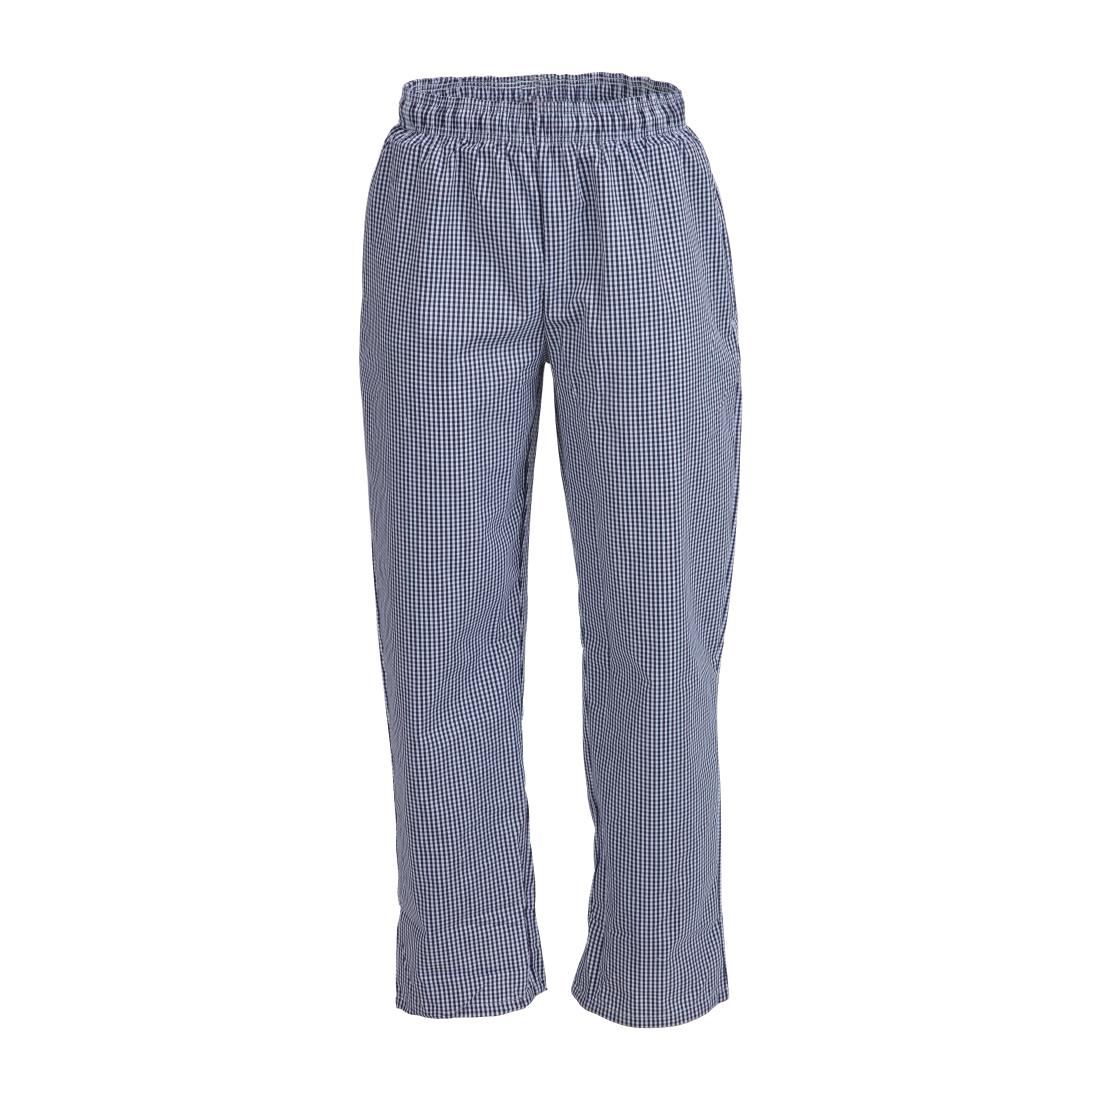 Whites Unisex Vegas Chefs Trousers Small Blue And White Check 4xl